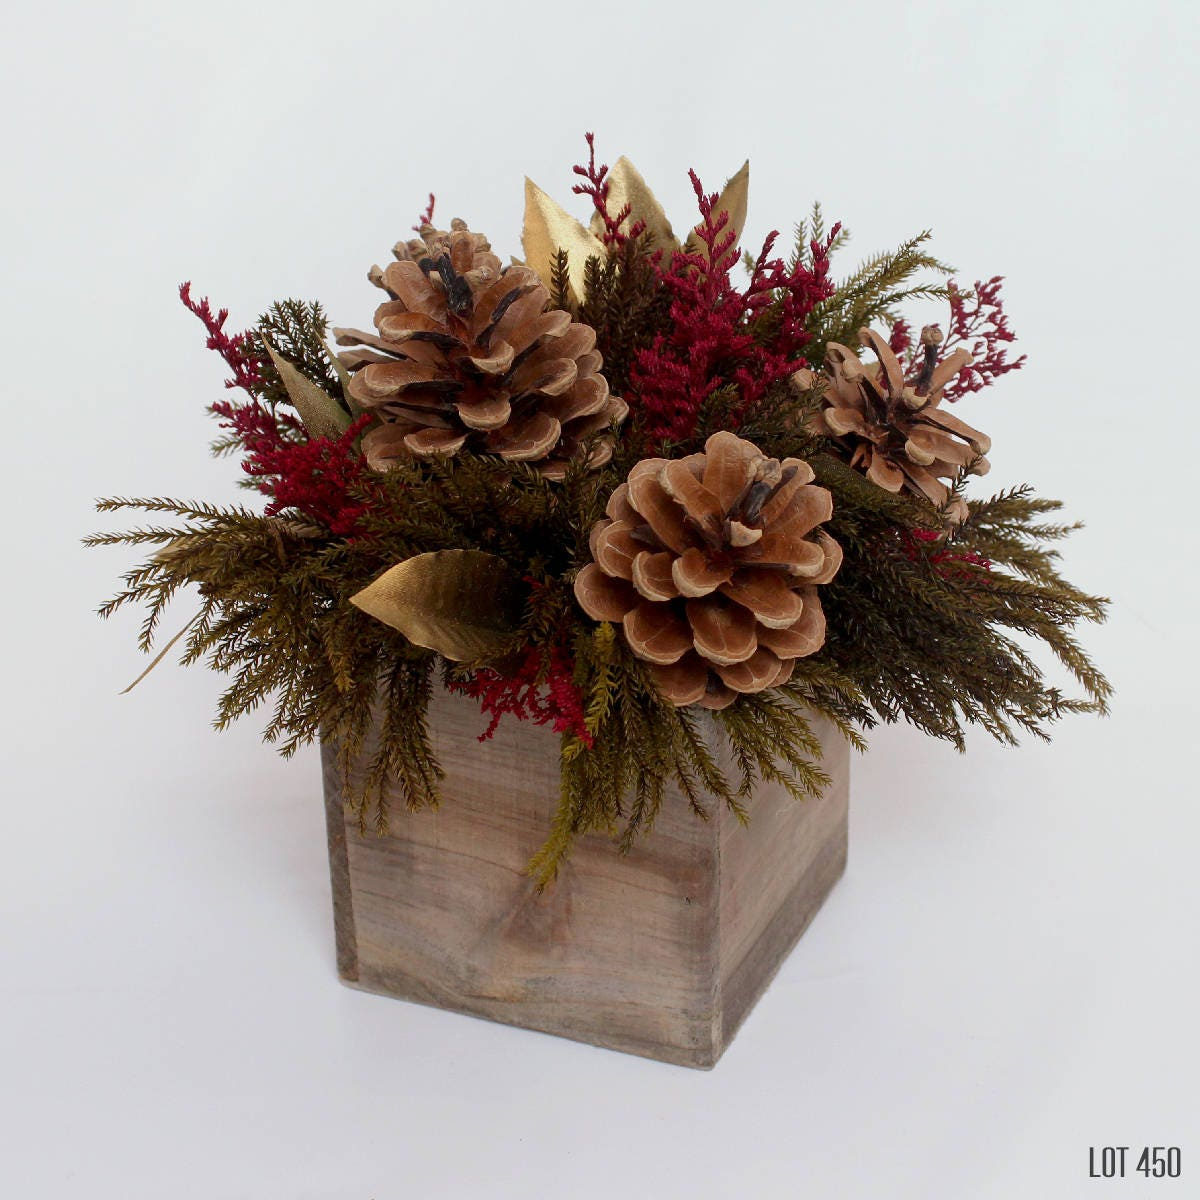 Christmas centerpiece holiday decor burgundy red and gold